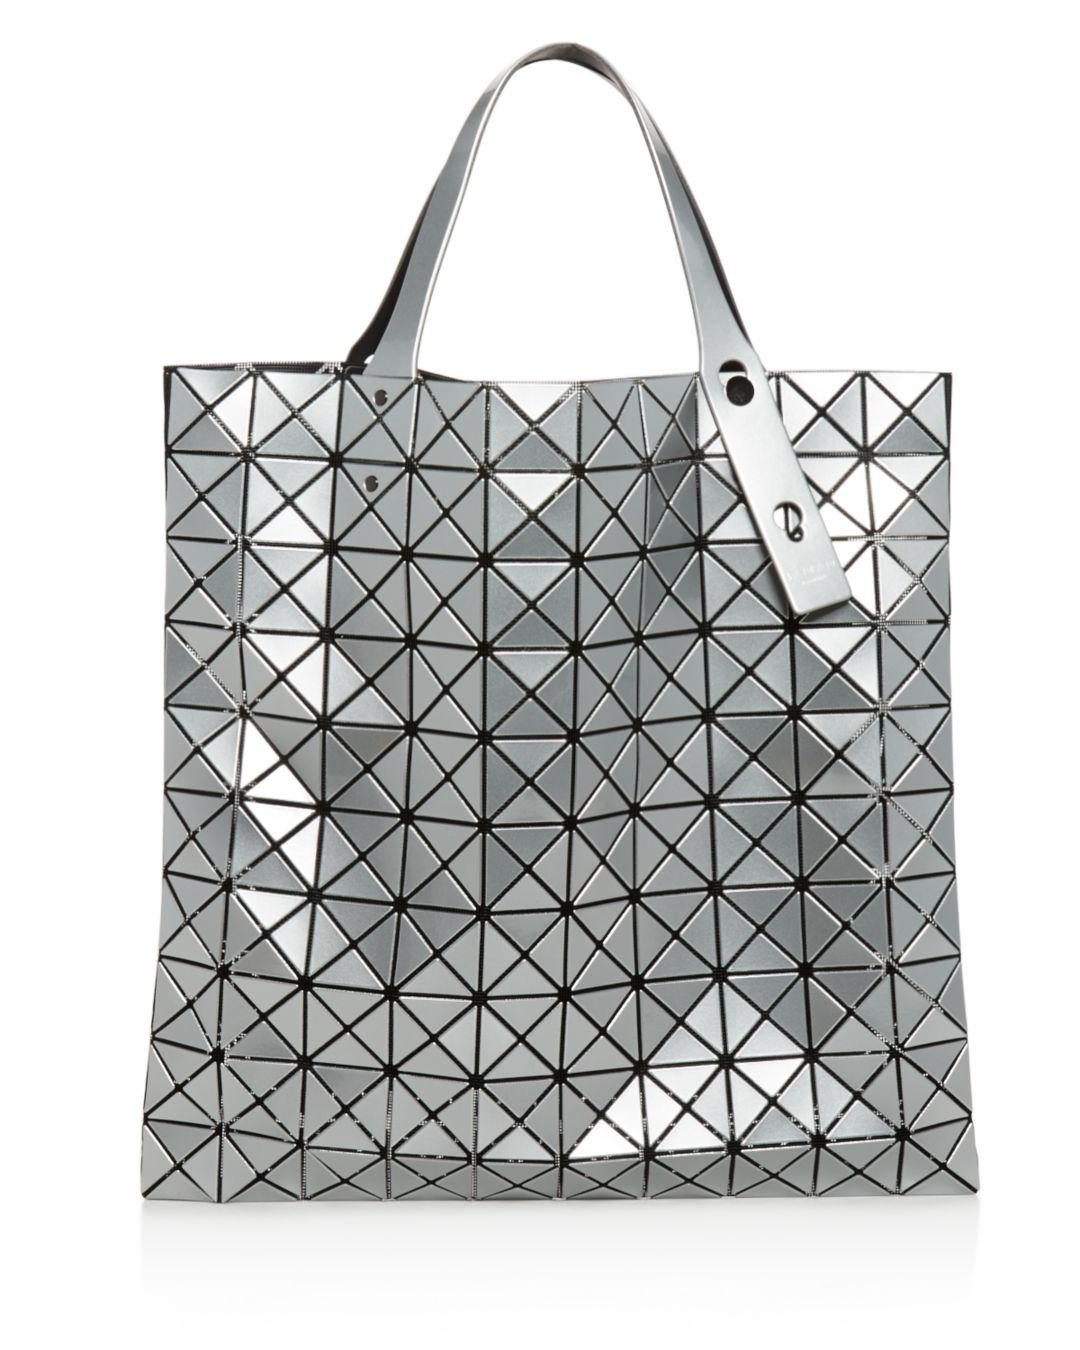 Lyst - Bao Bao Issey Miyake Prism Tote Bag in Metallic - Save 72% 6dc9c0aa56a6d